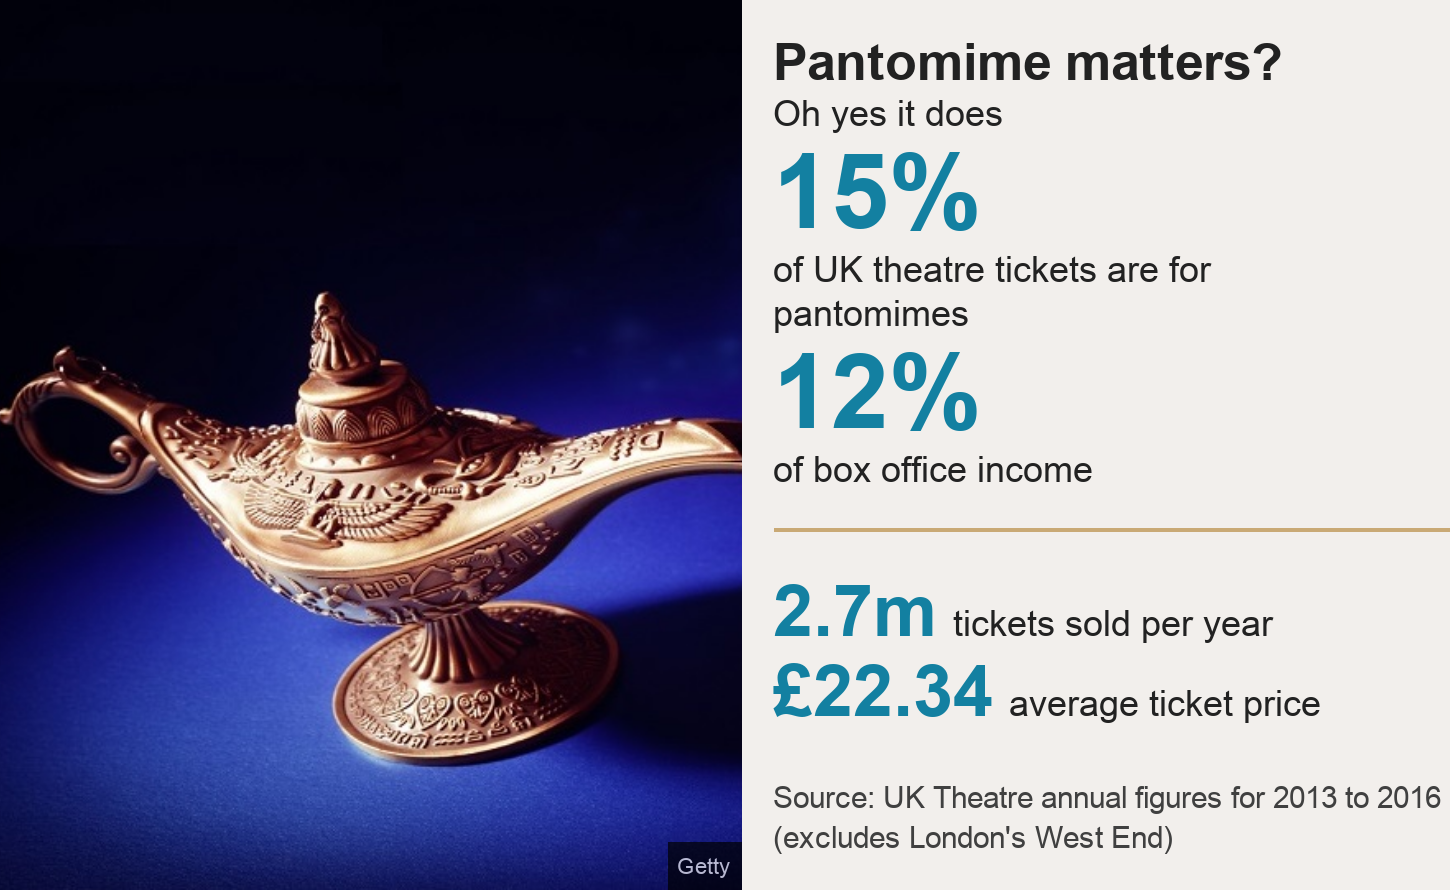 Datapic showing pantomime accounts for 15% of UK theatre ticket sales